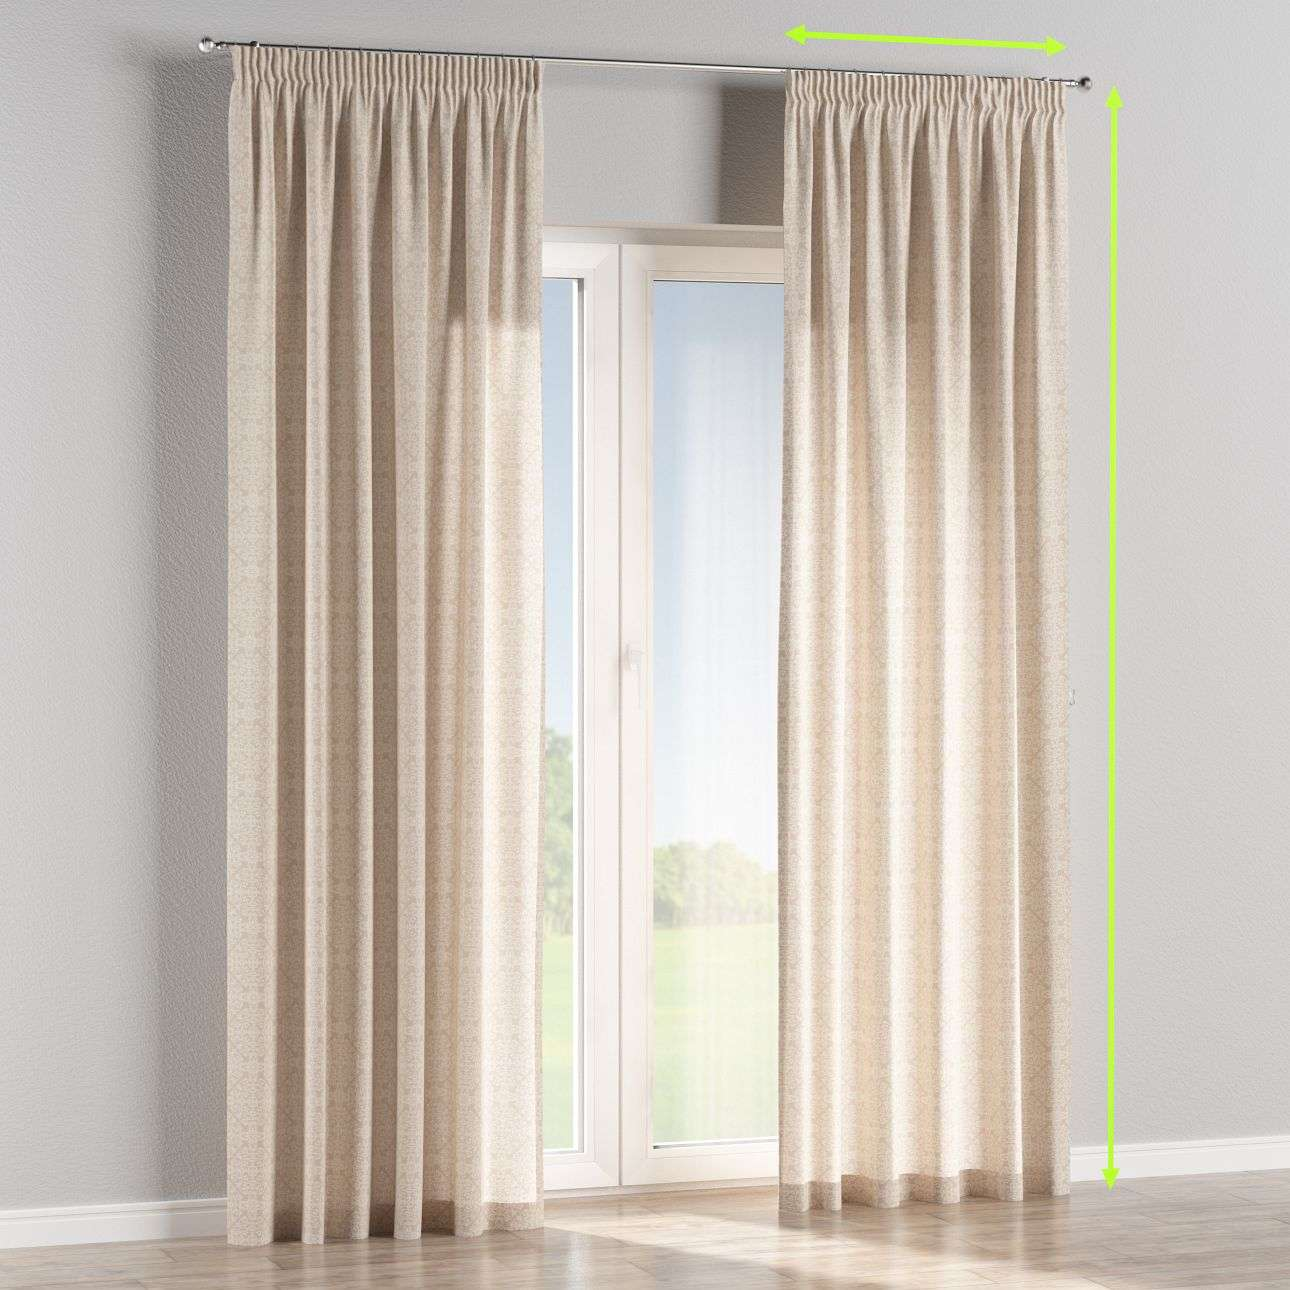 Pencil pleat lined curtains in collection Flowers, fabric: 140-39